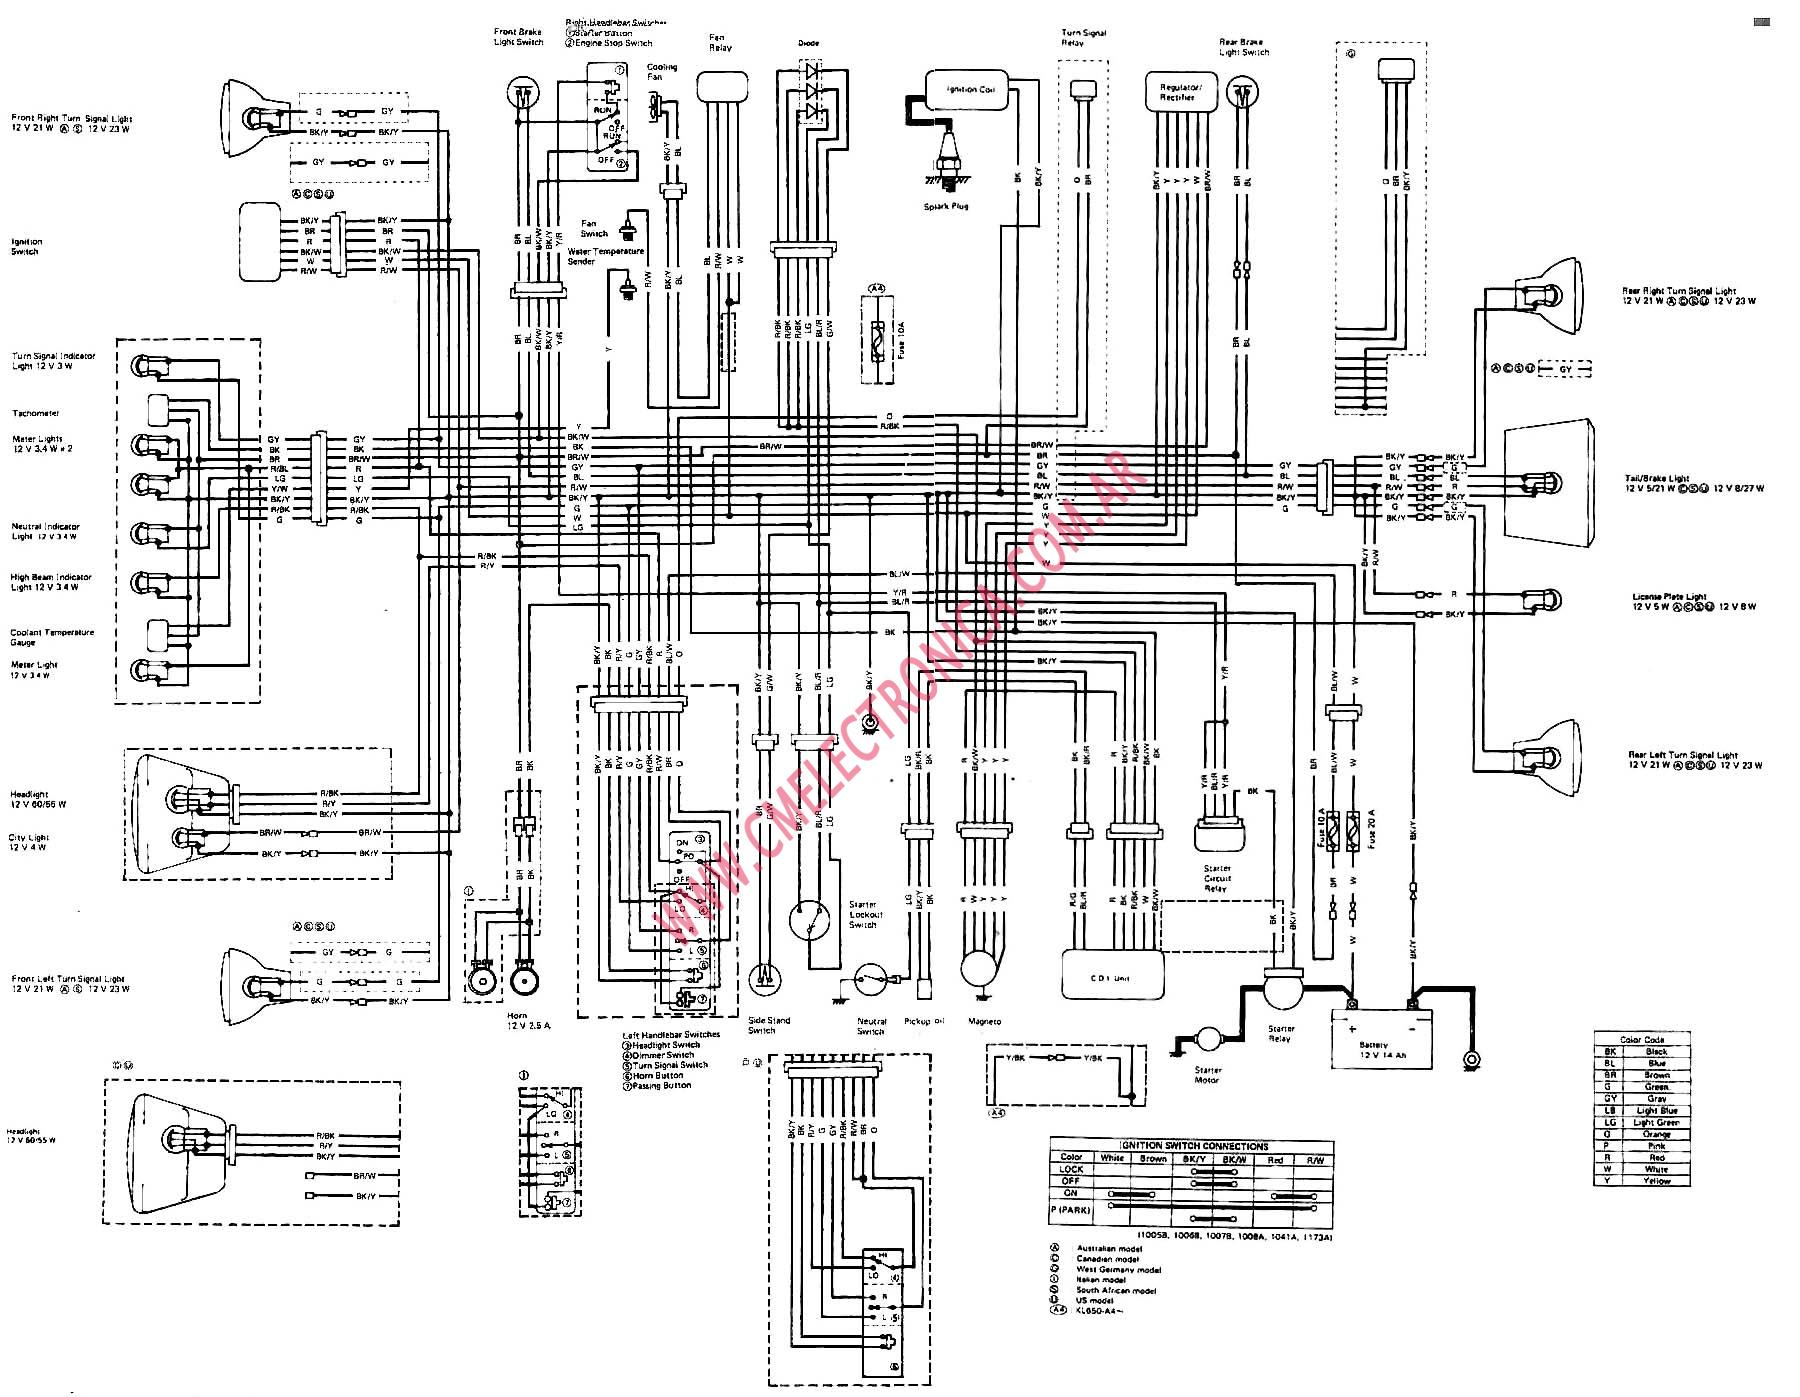 Diagram  Kawasaki 550 Mule Ignition Wiring Diagram Full Version Hd Quality Wiring Diagram